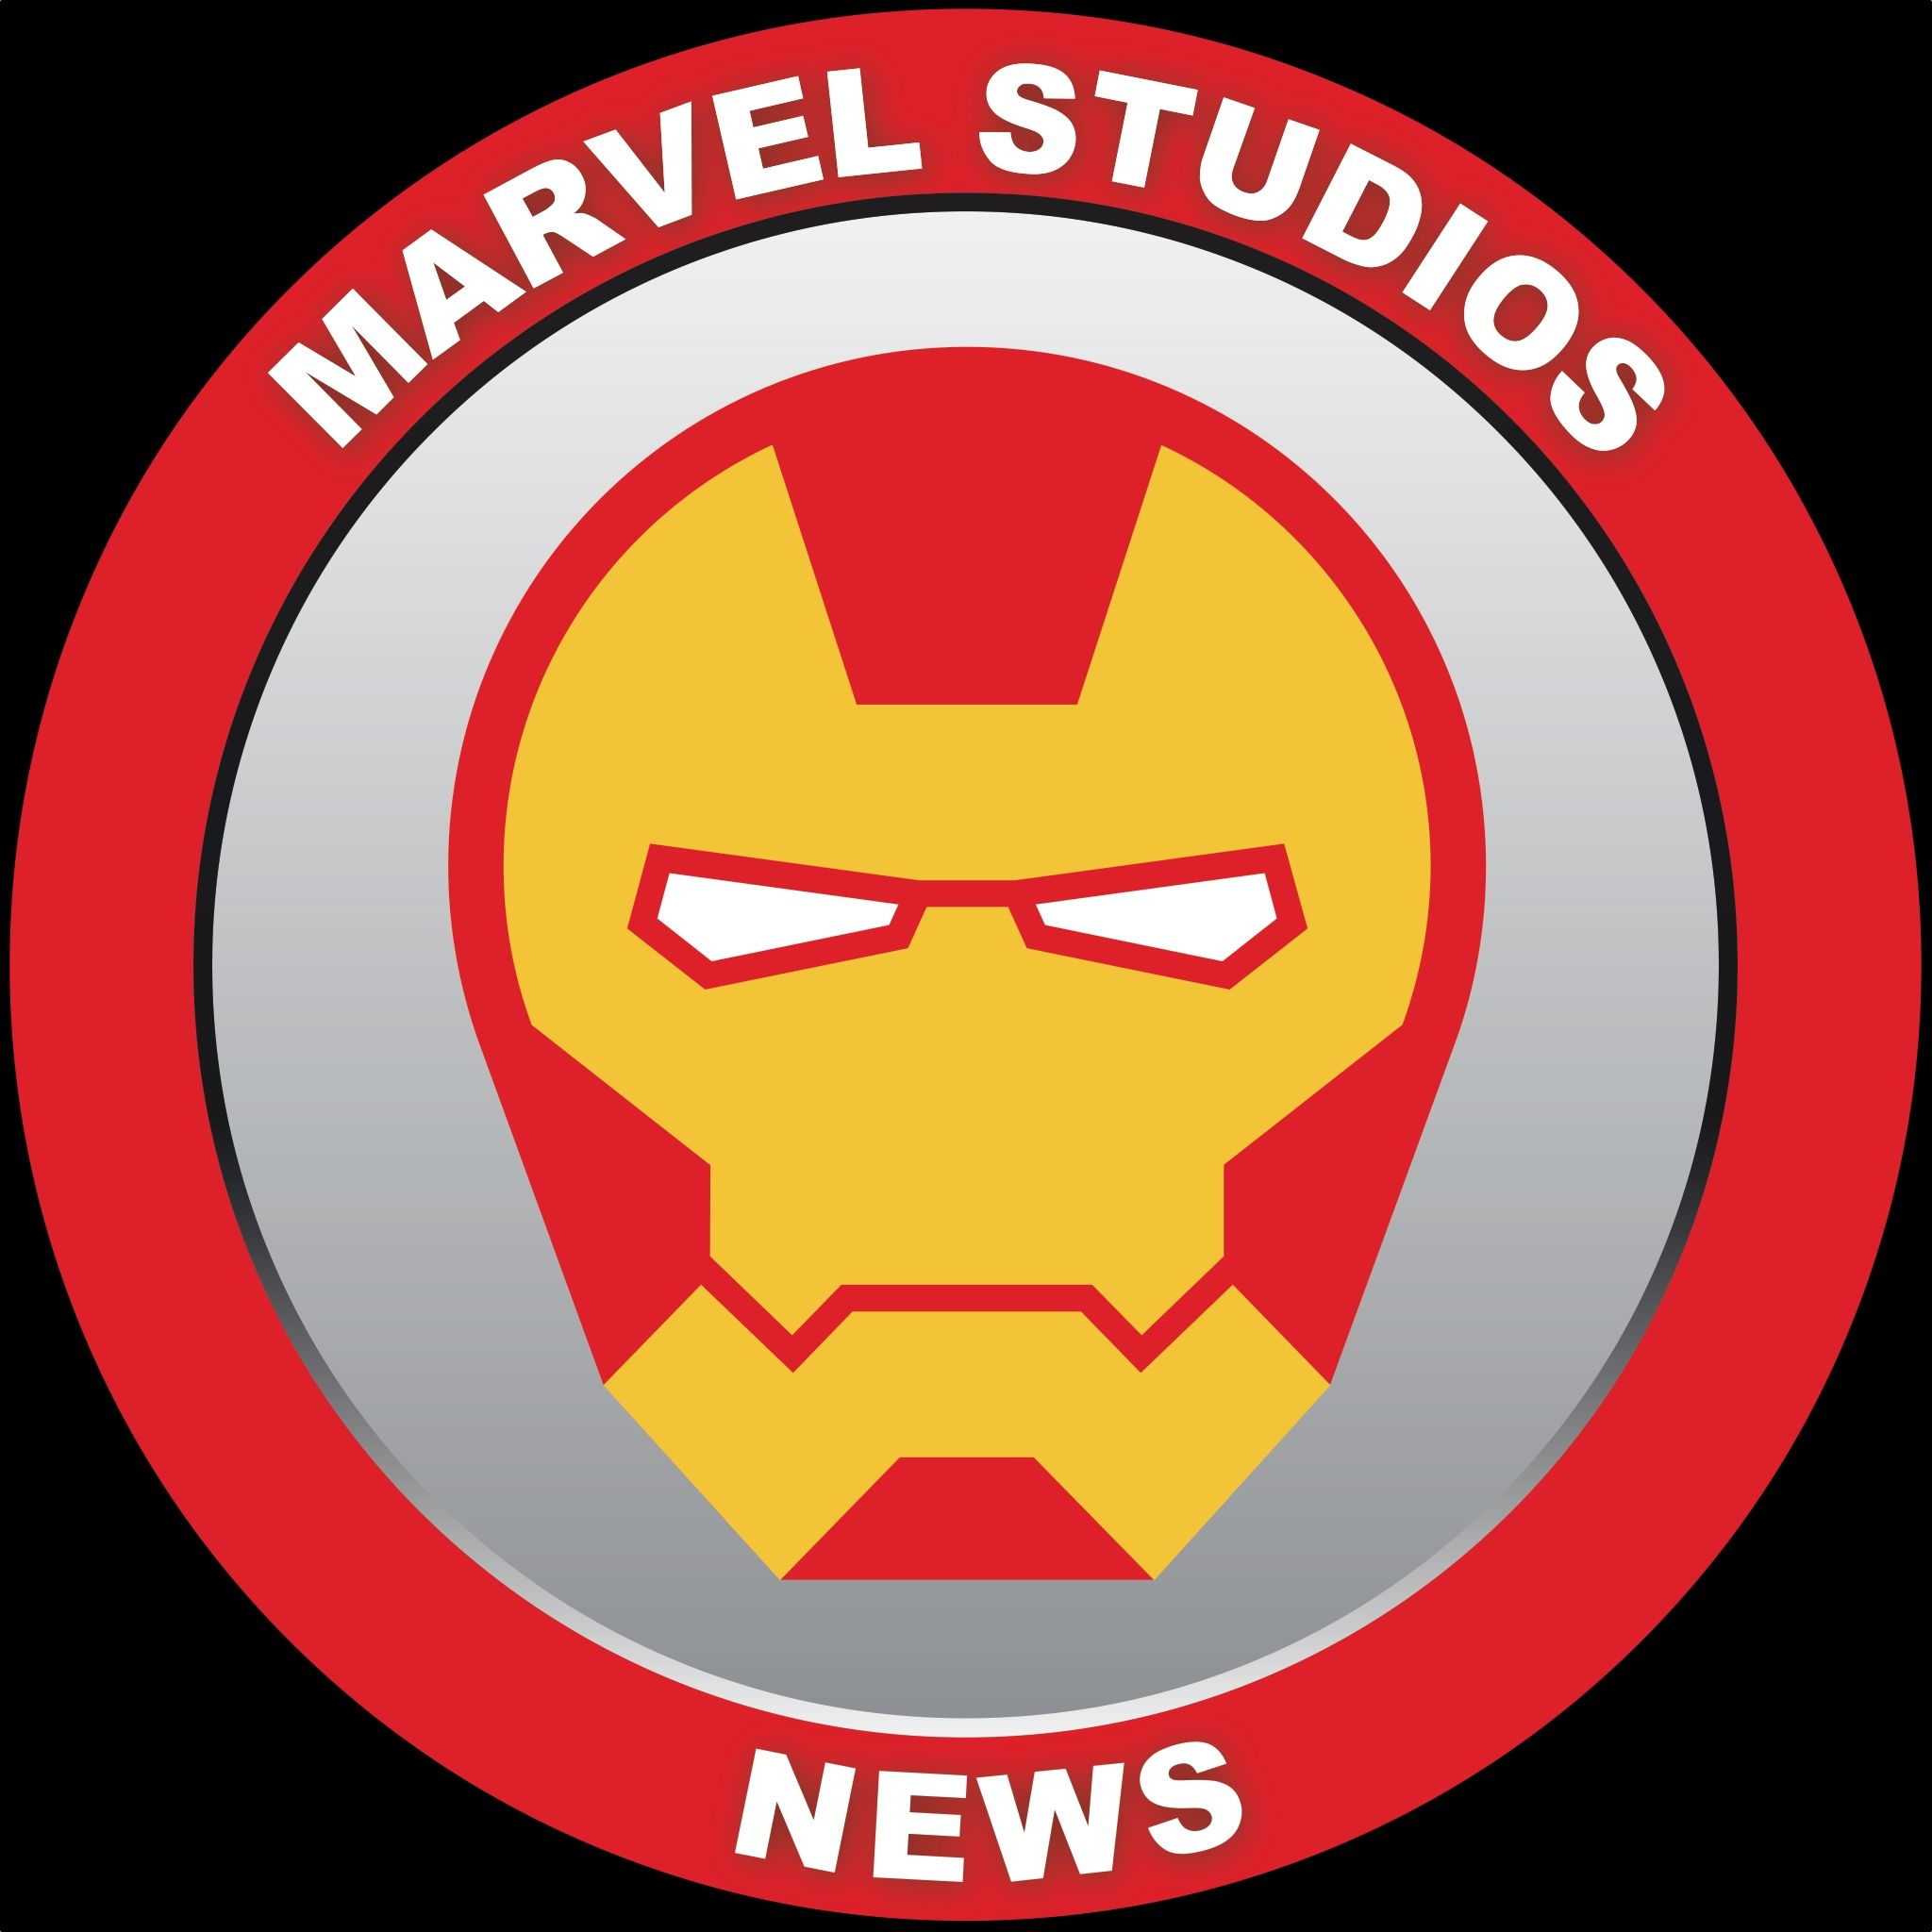 Marvel Studios News Logo